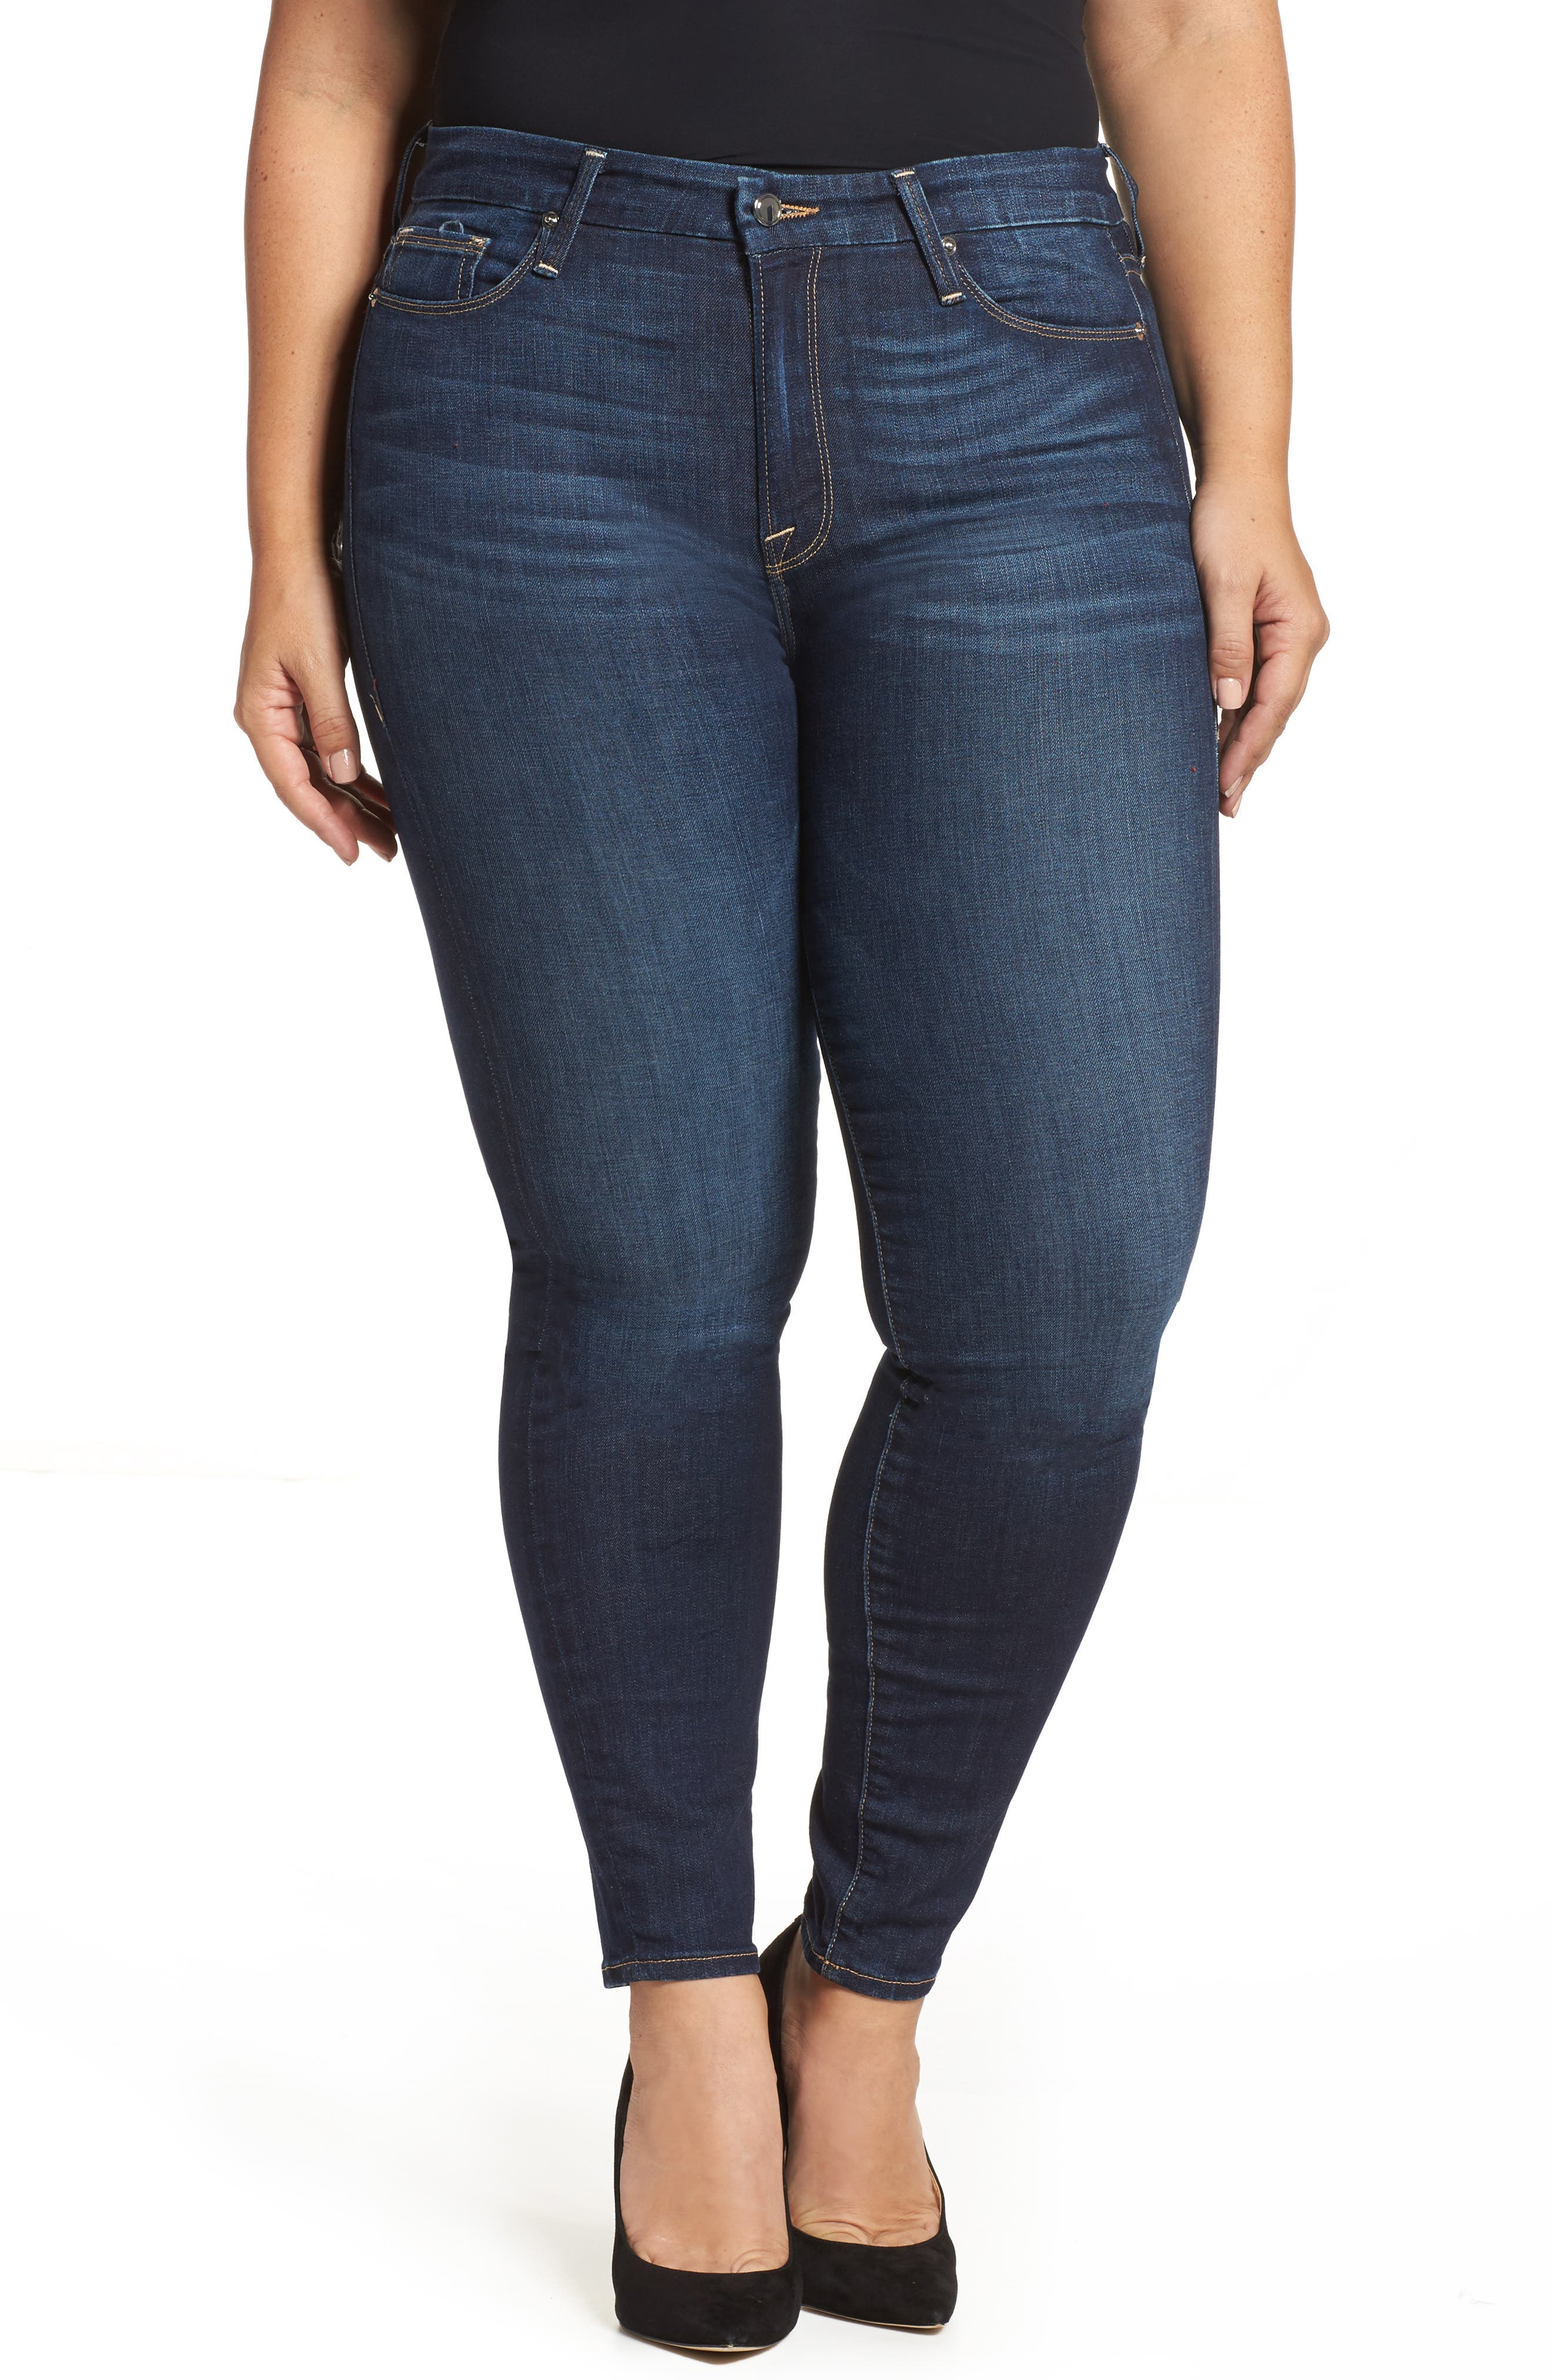 Main Image - Good American Good Legs High Waist Skinny Jeans (Blue 091)